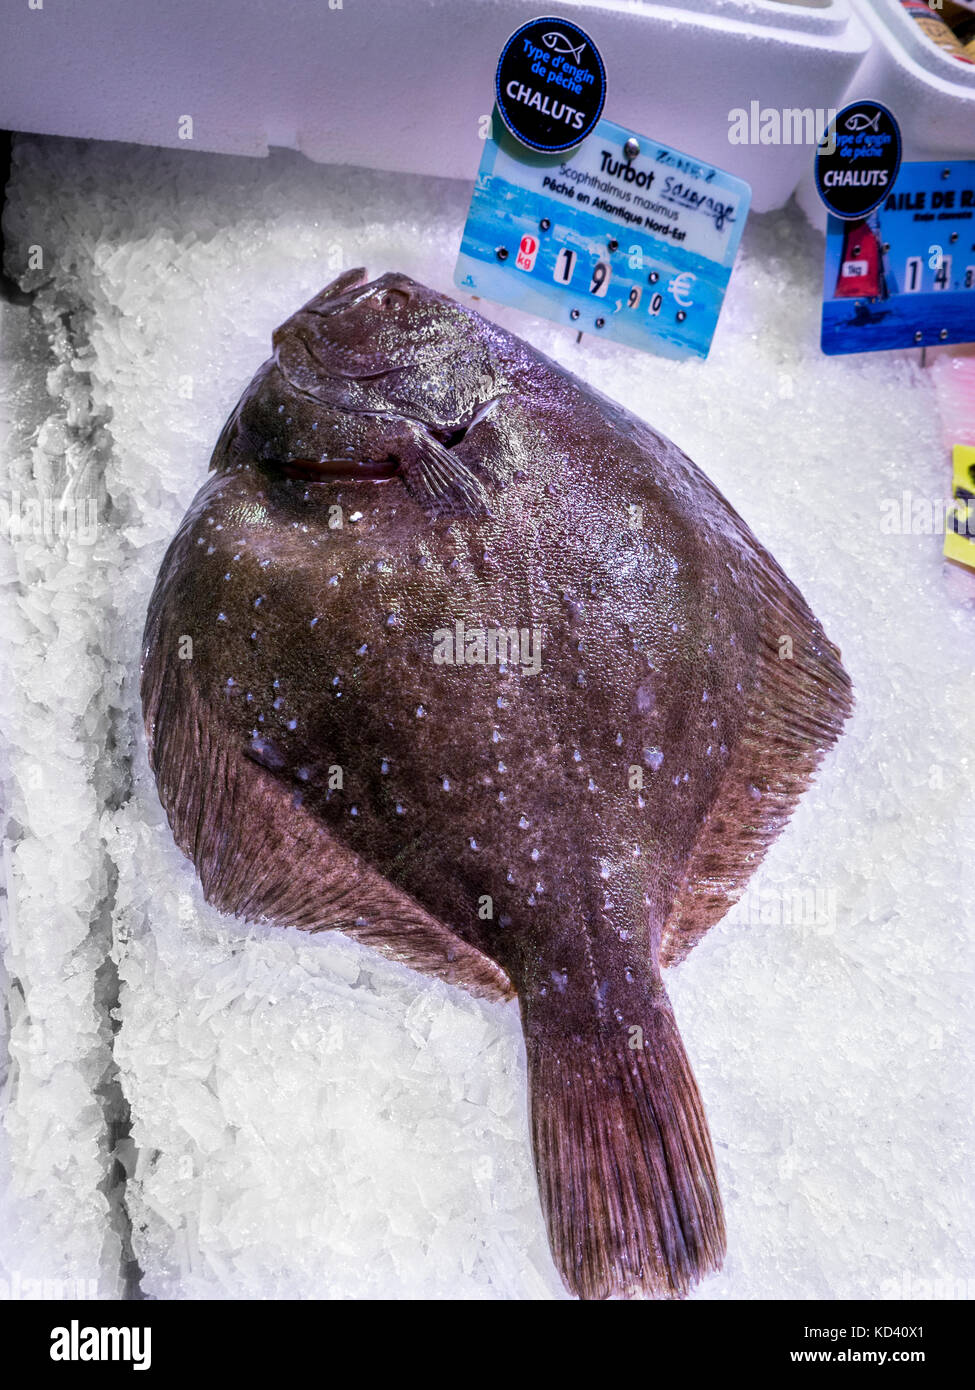 Turbot flatfish fresh in ice at Concarneau historic covered fish market Brittany France - Stock Image